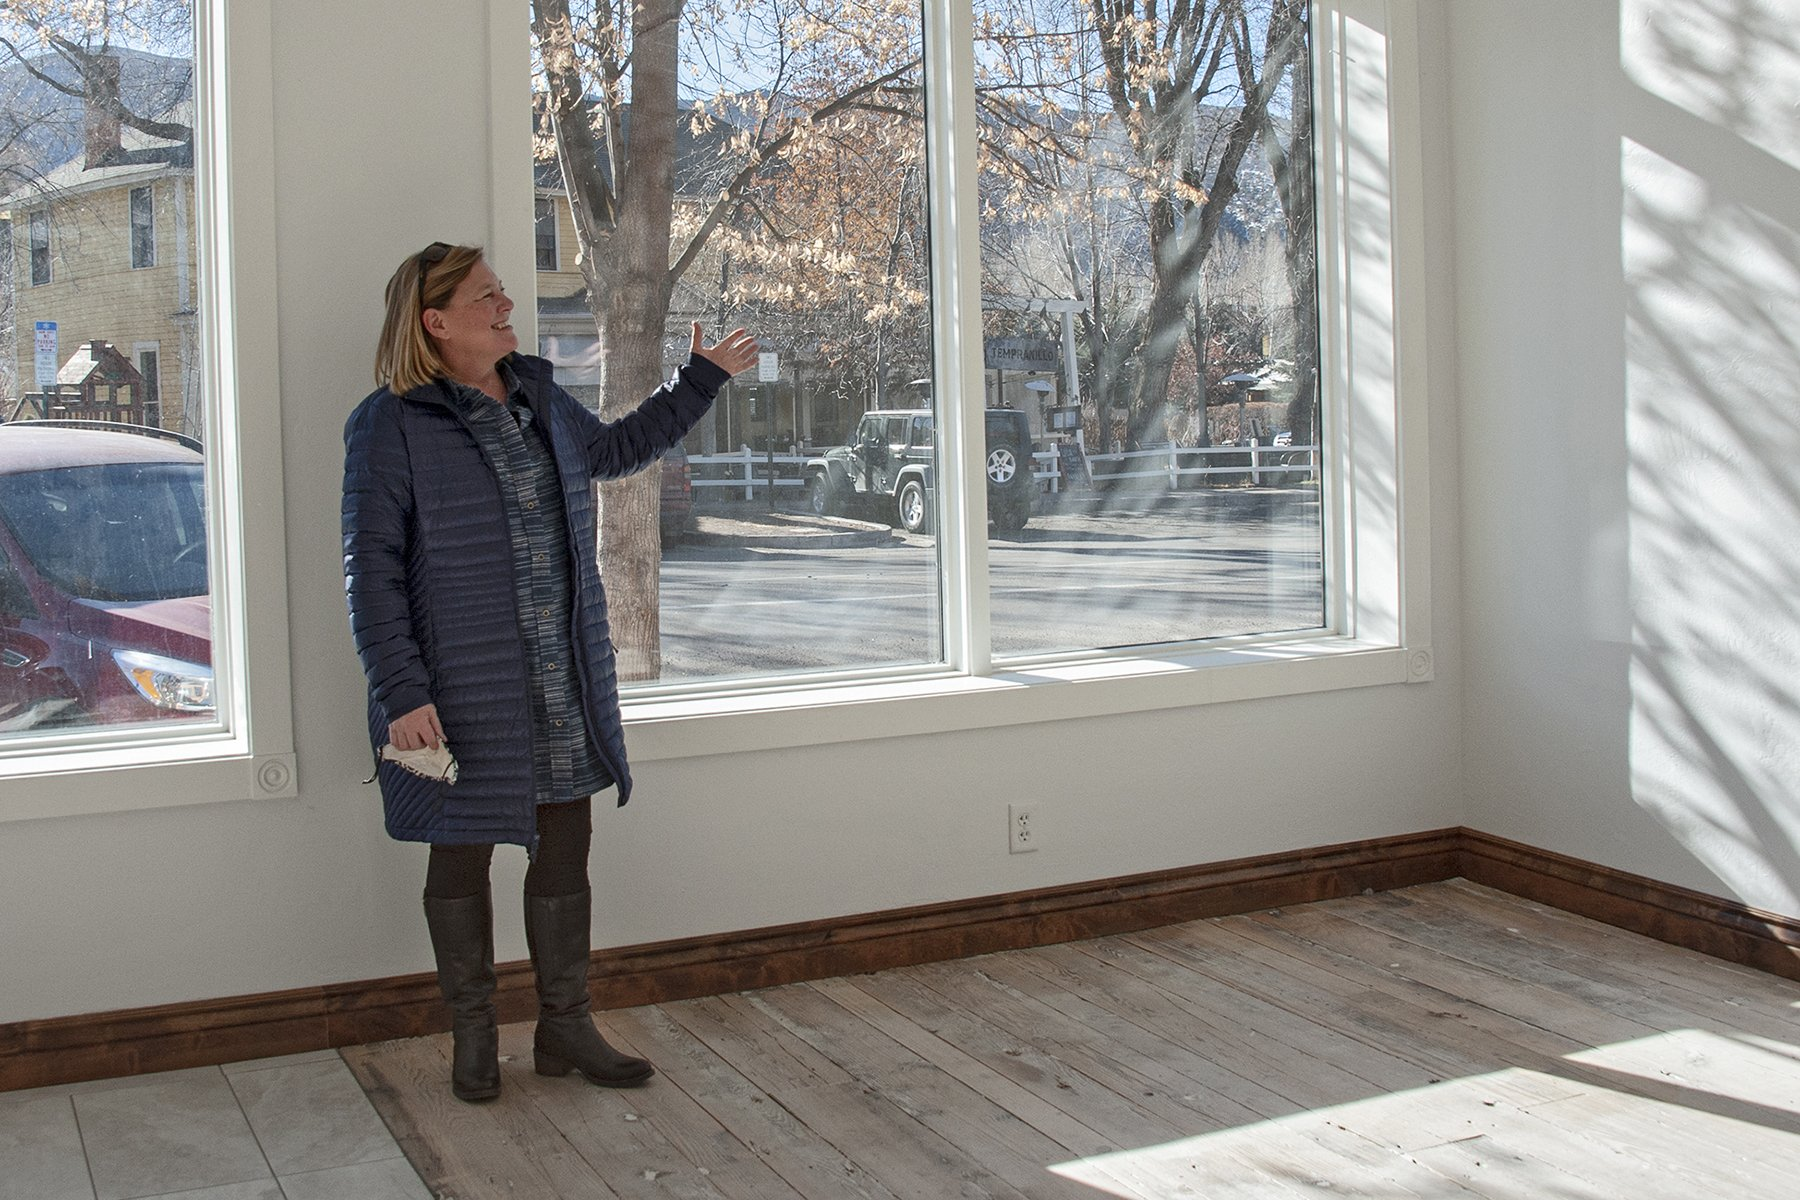 Art Base Executive Director Skye Skinner shows how the large first floor gallery space will be located to attract the interest of people strolling by on Midland Avenue. Photo by Roberta McGowan